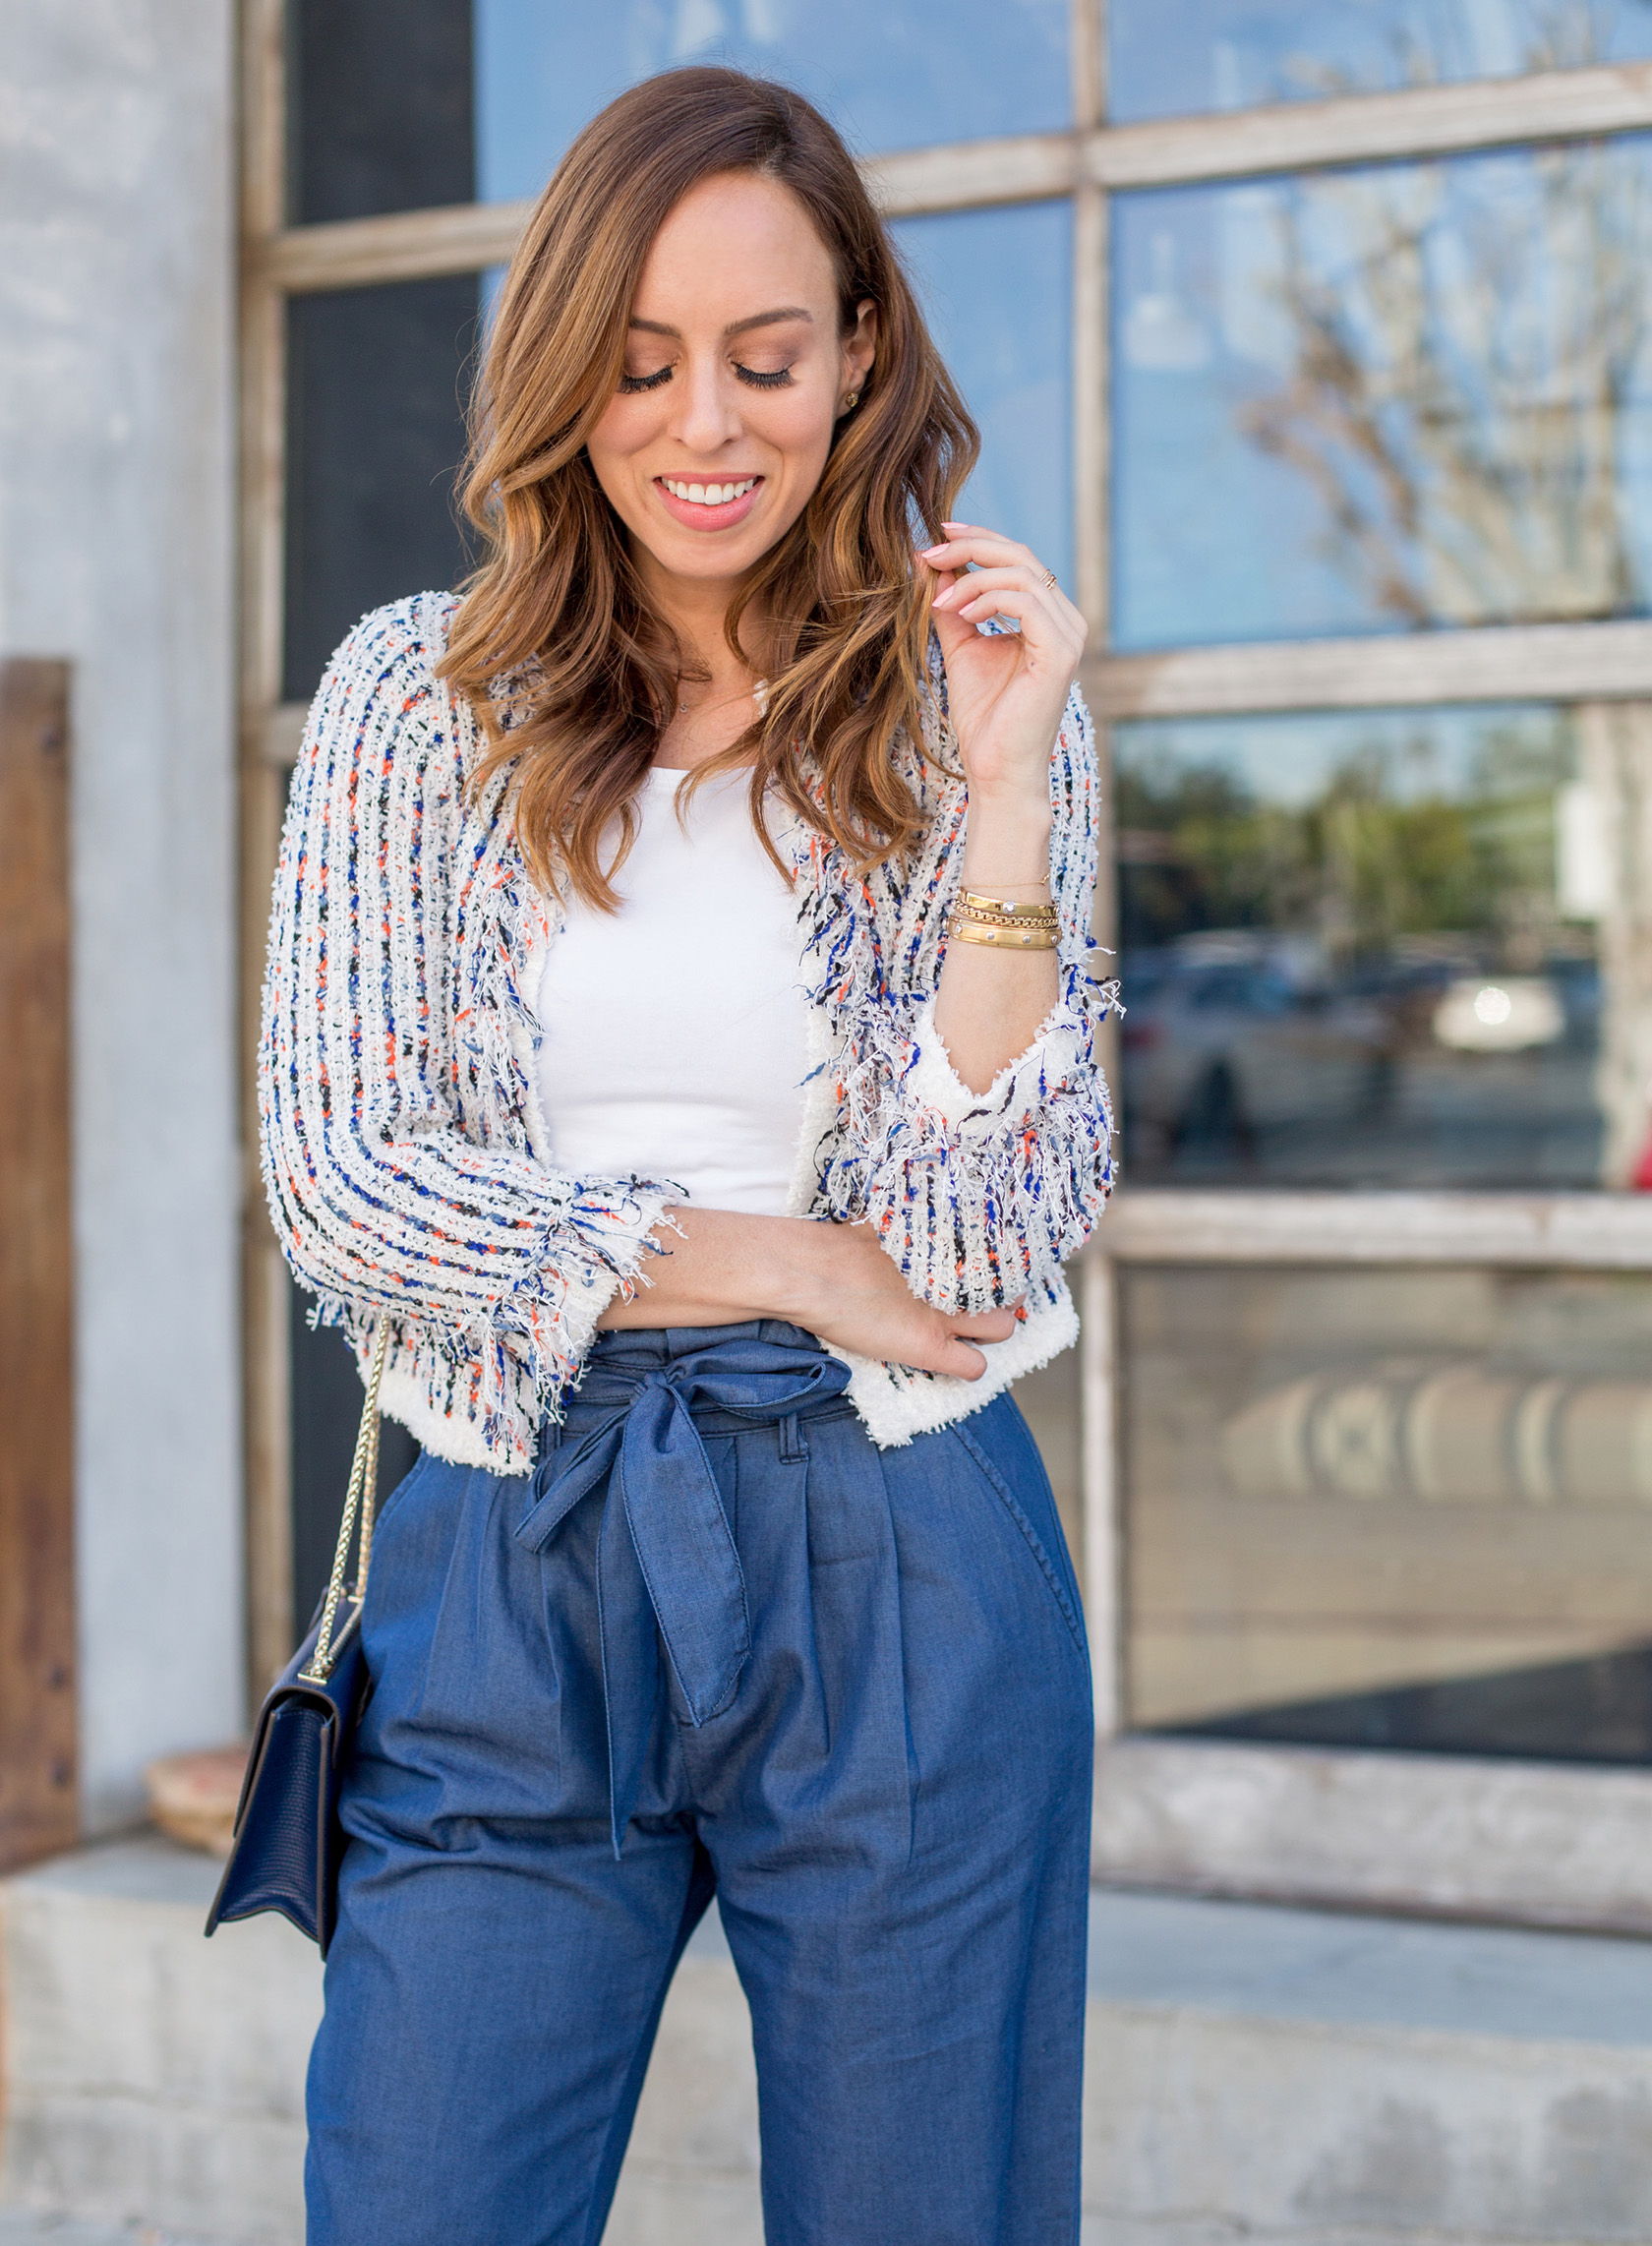 Sydne Style shows how to wear a cropped cardigan for office outfit ideas